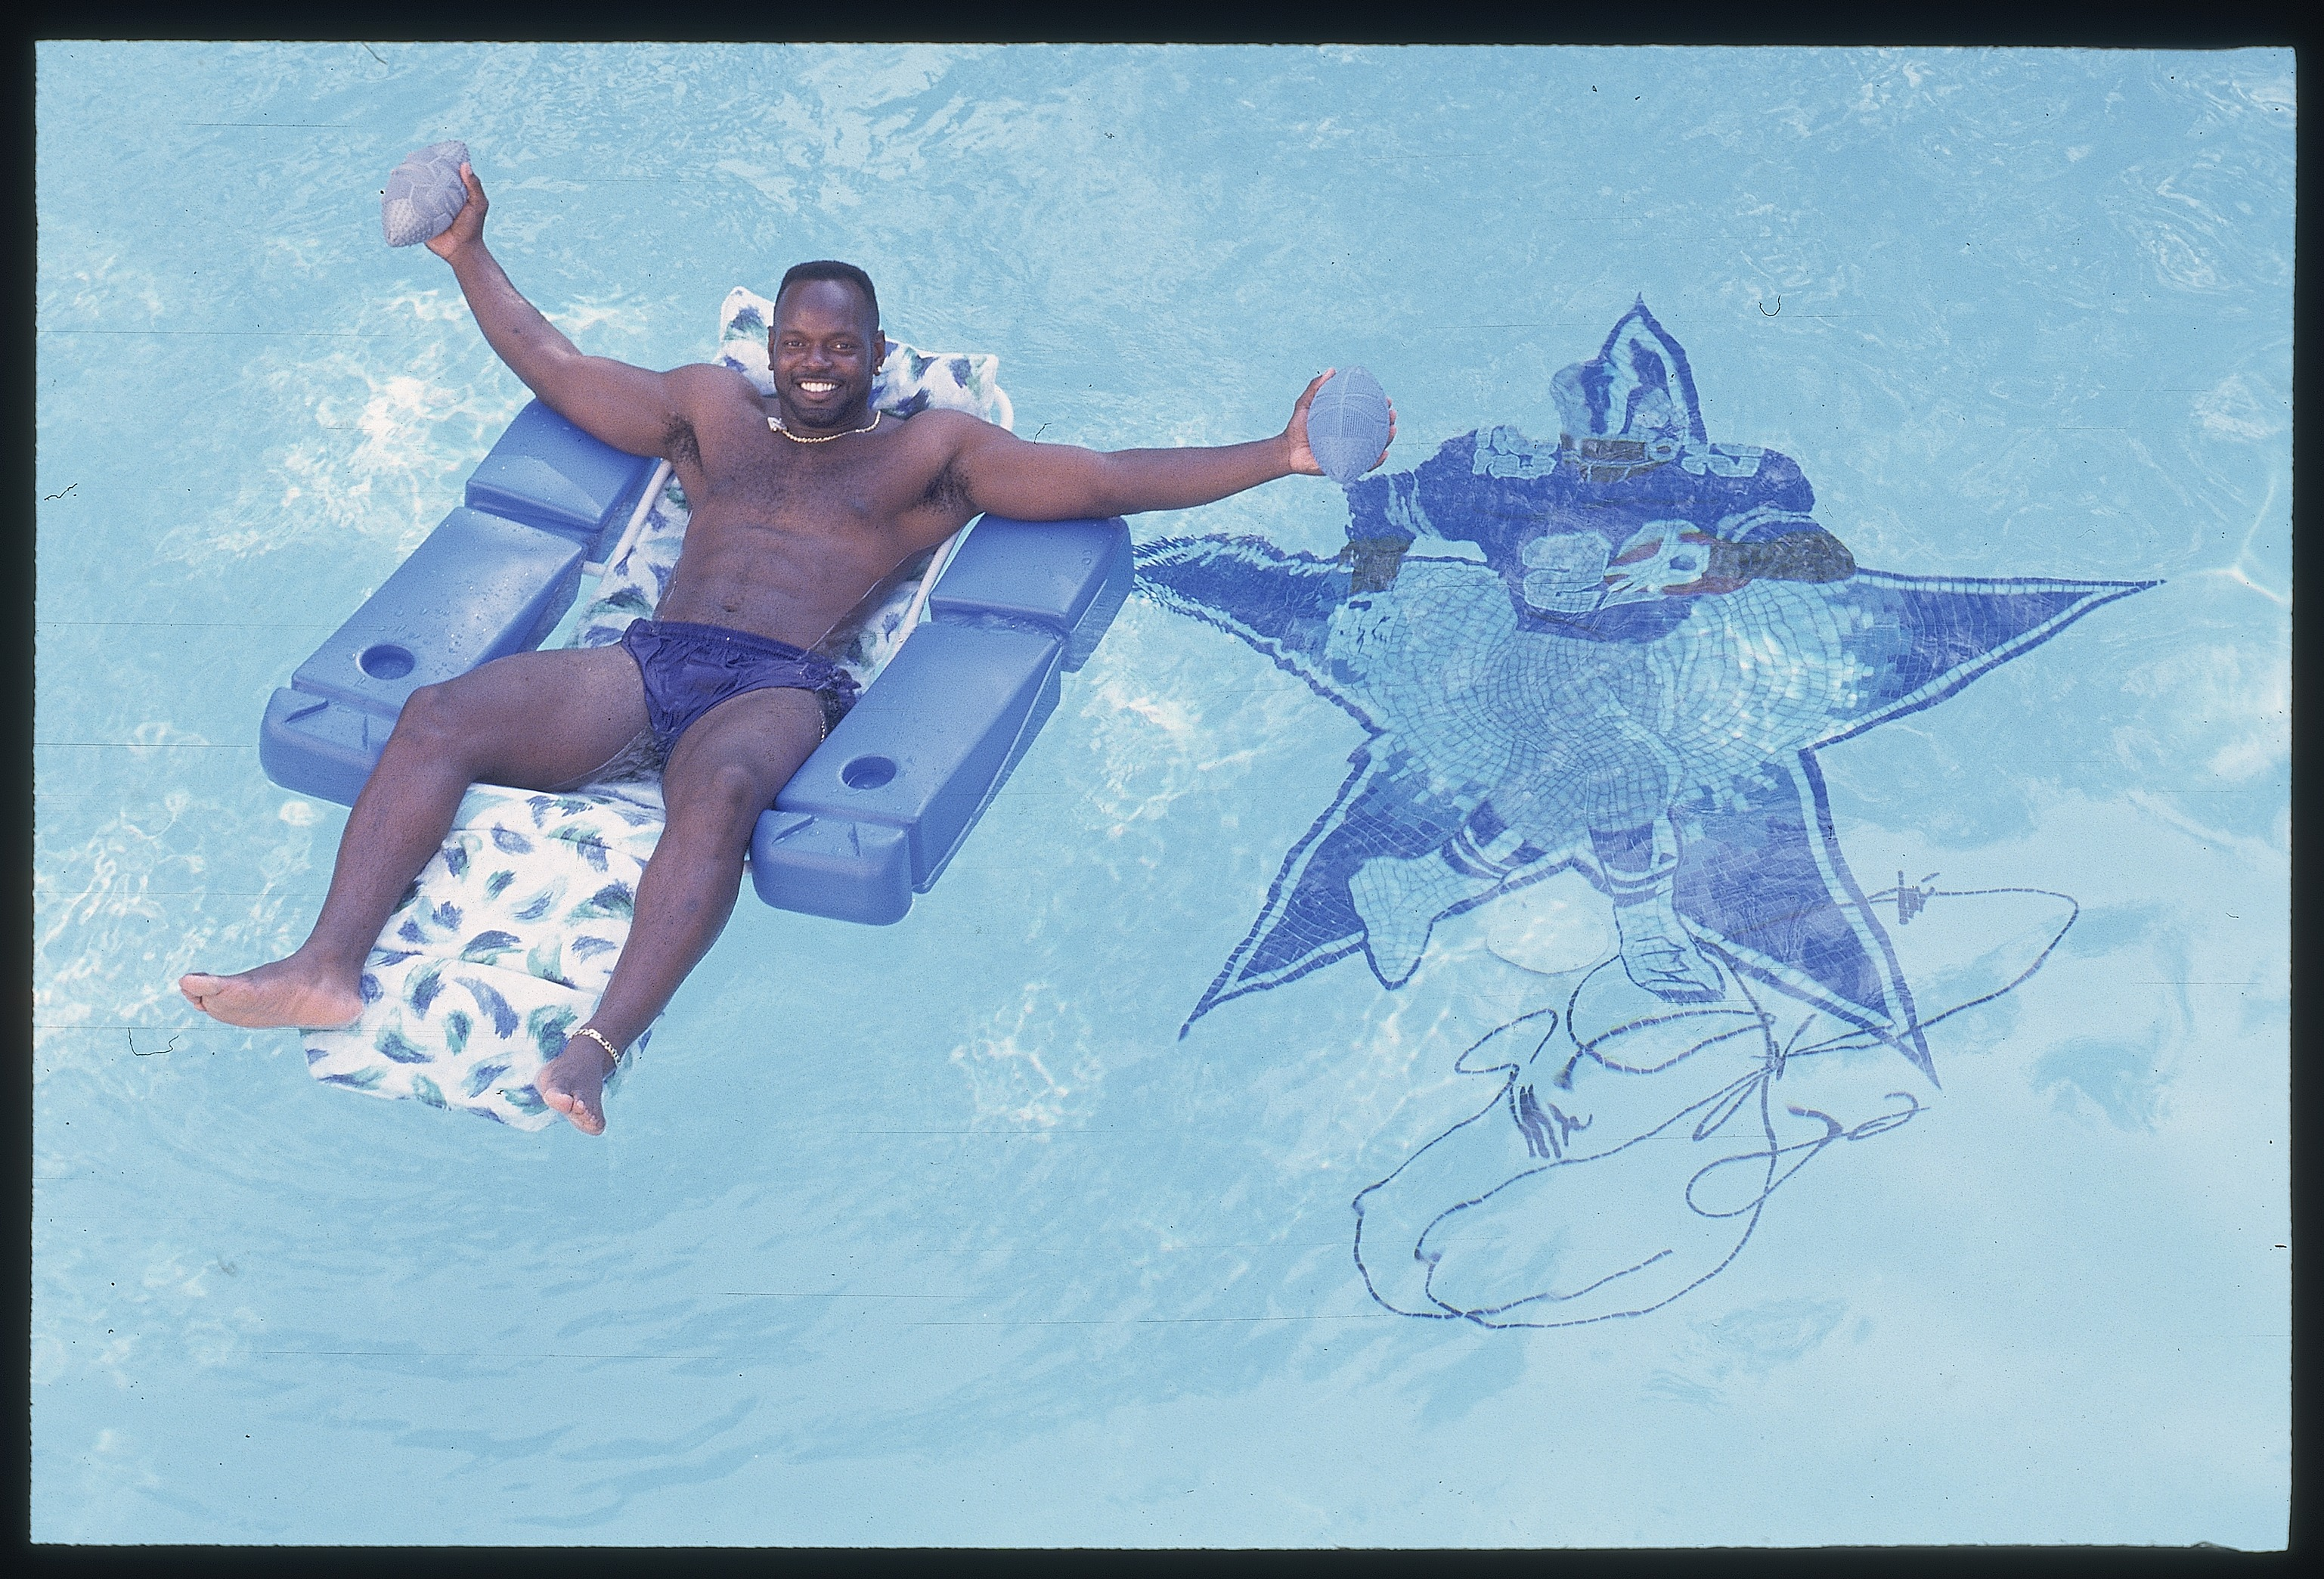 Emmitt Smith of the Dallas Cowboys relaxing on chair in the pool at his home in Dallas, Texas in 1996.